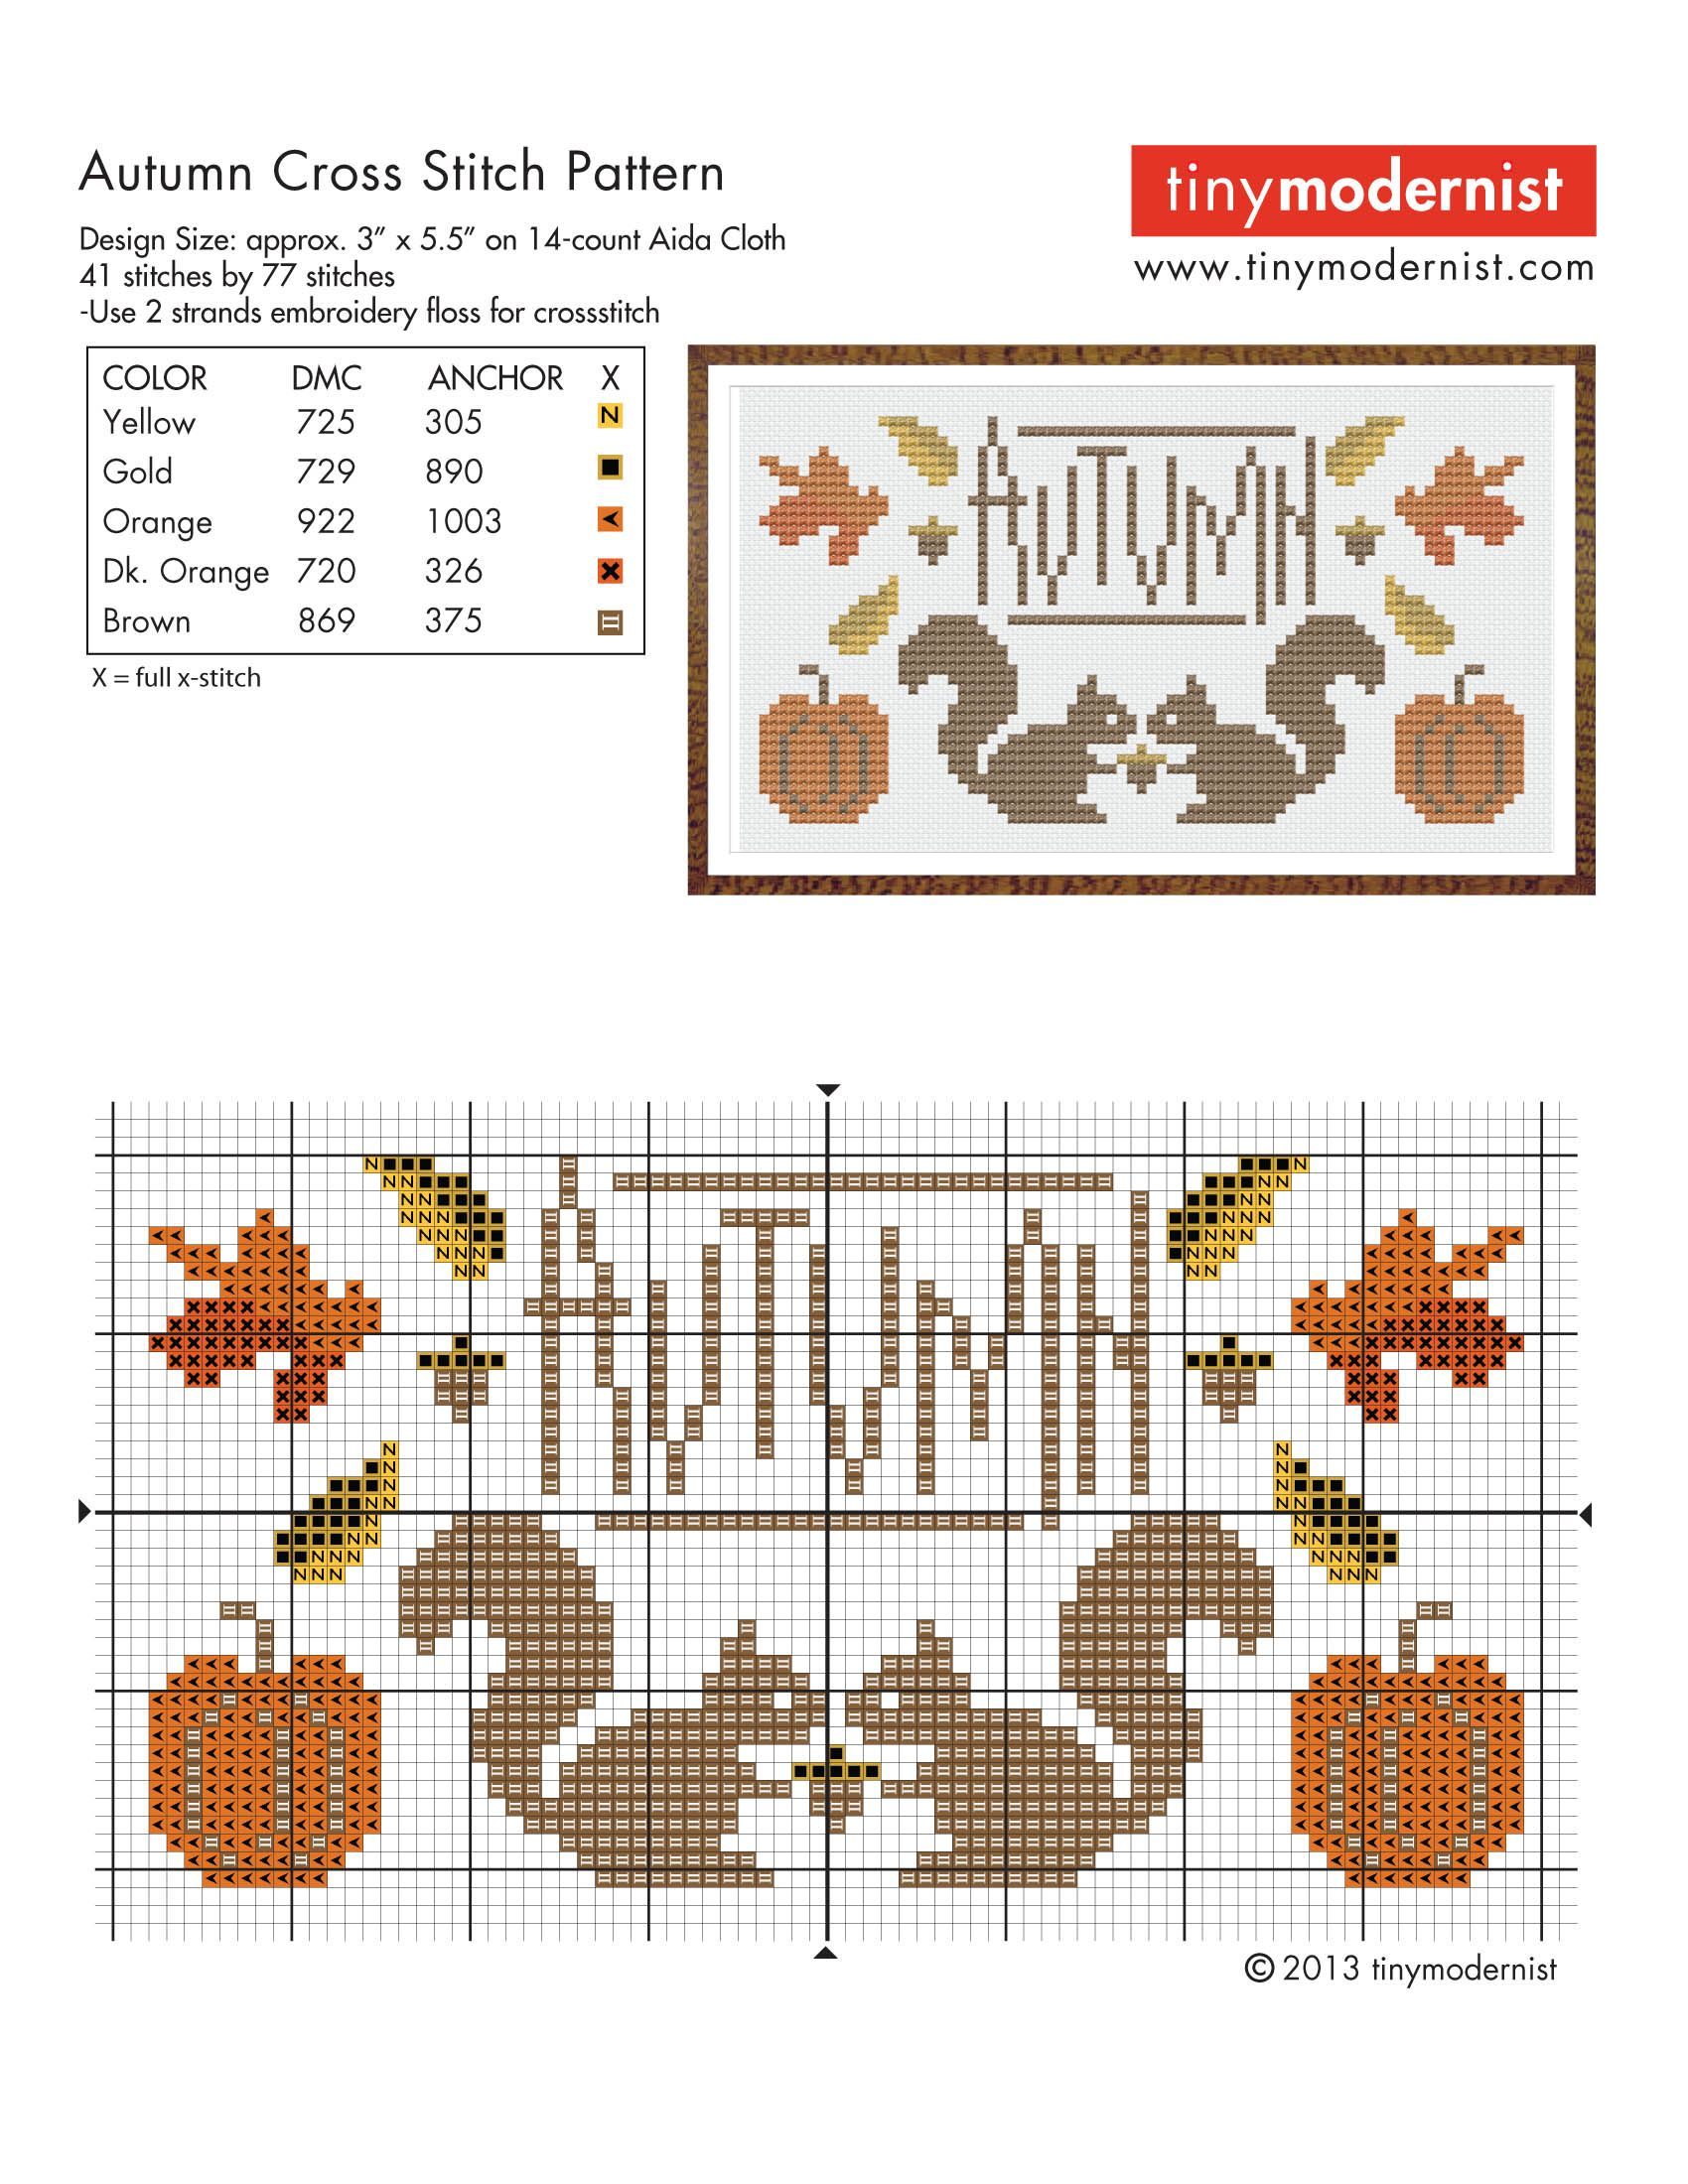 Free Cross Stitch Patterns Autumn Cross Stitch Patterns Cross